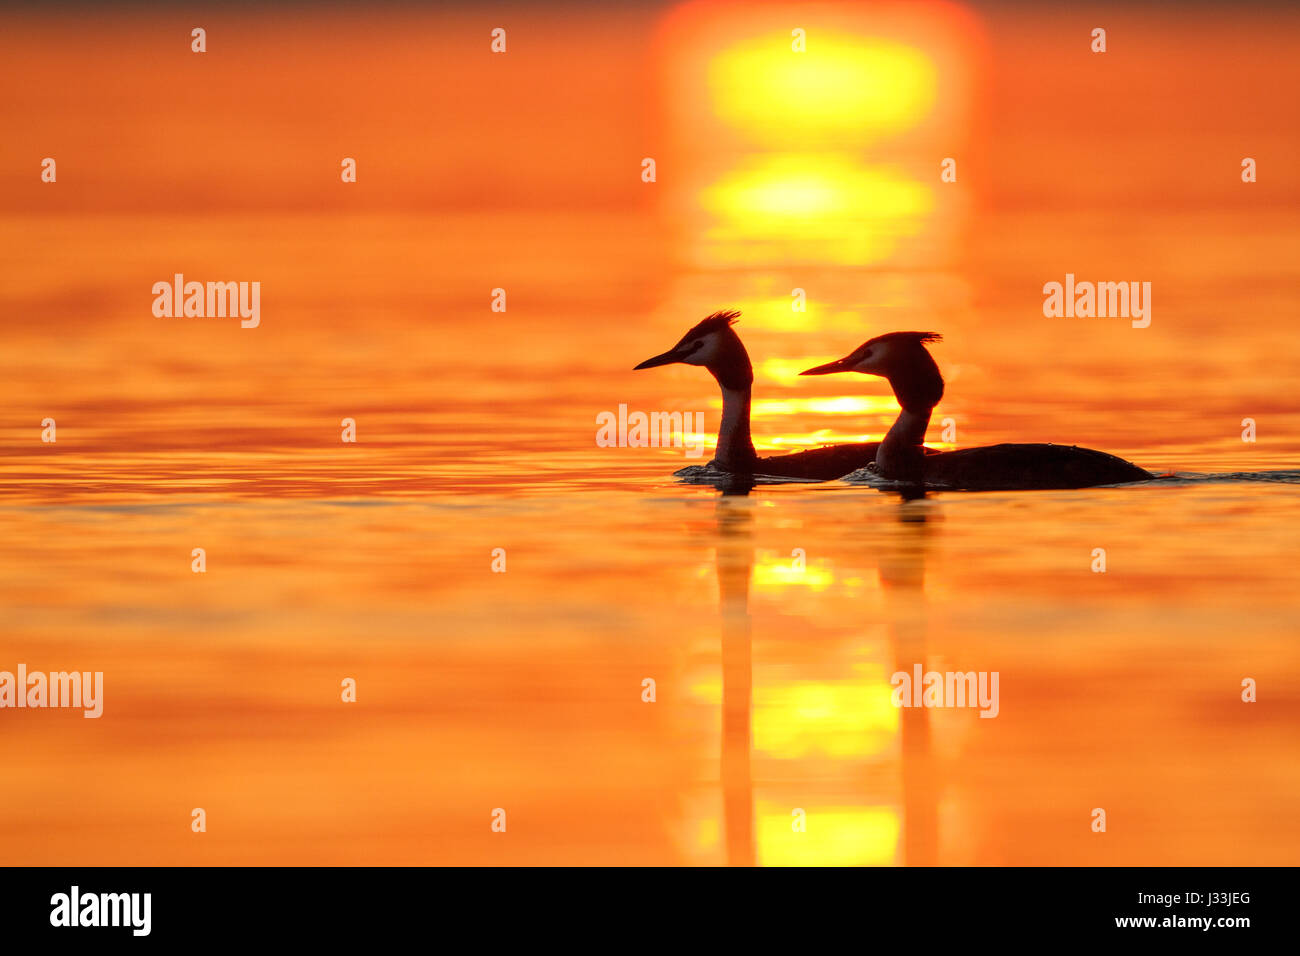 Two Great crested grebes (Podiceps cristatus) in lake, sunset, Baden-Württemberg, Germany - Stock Image